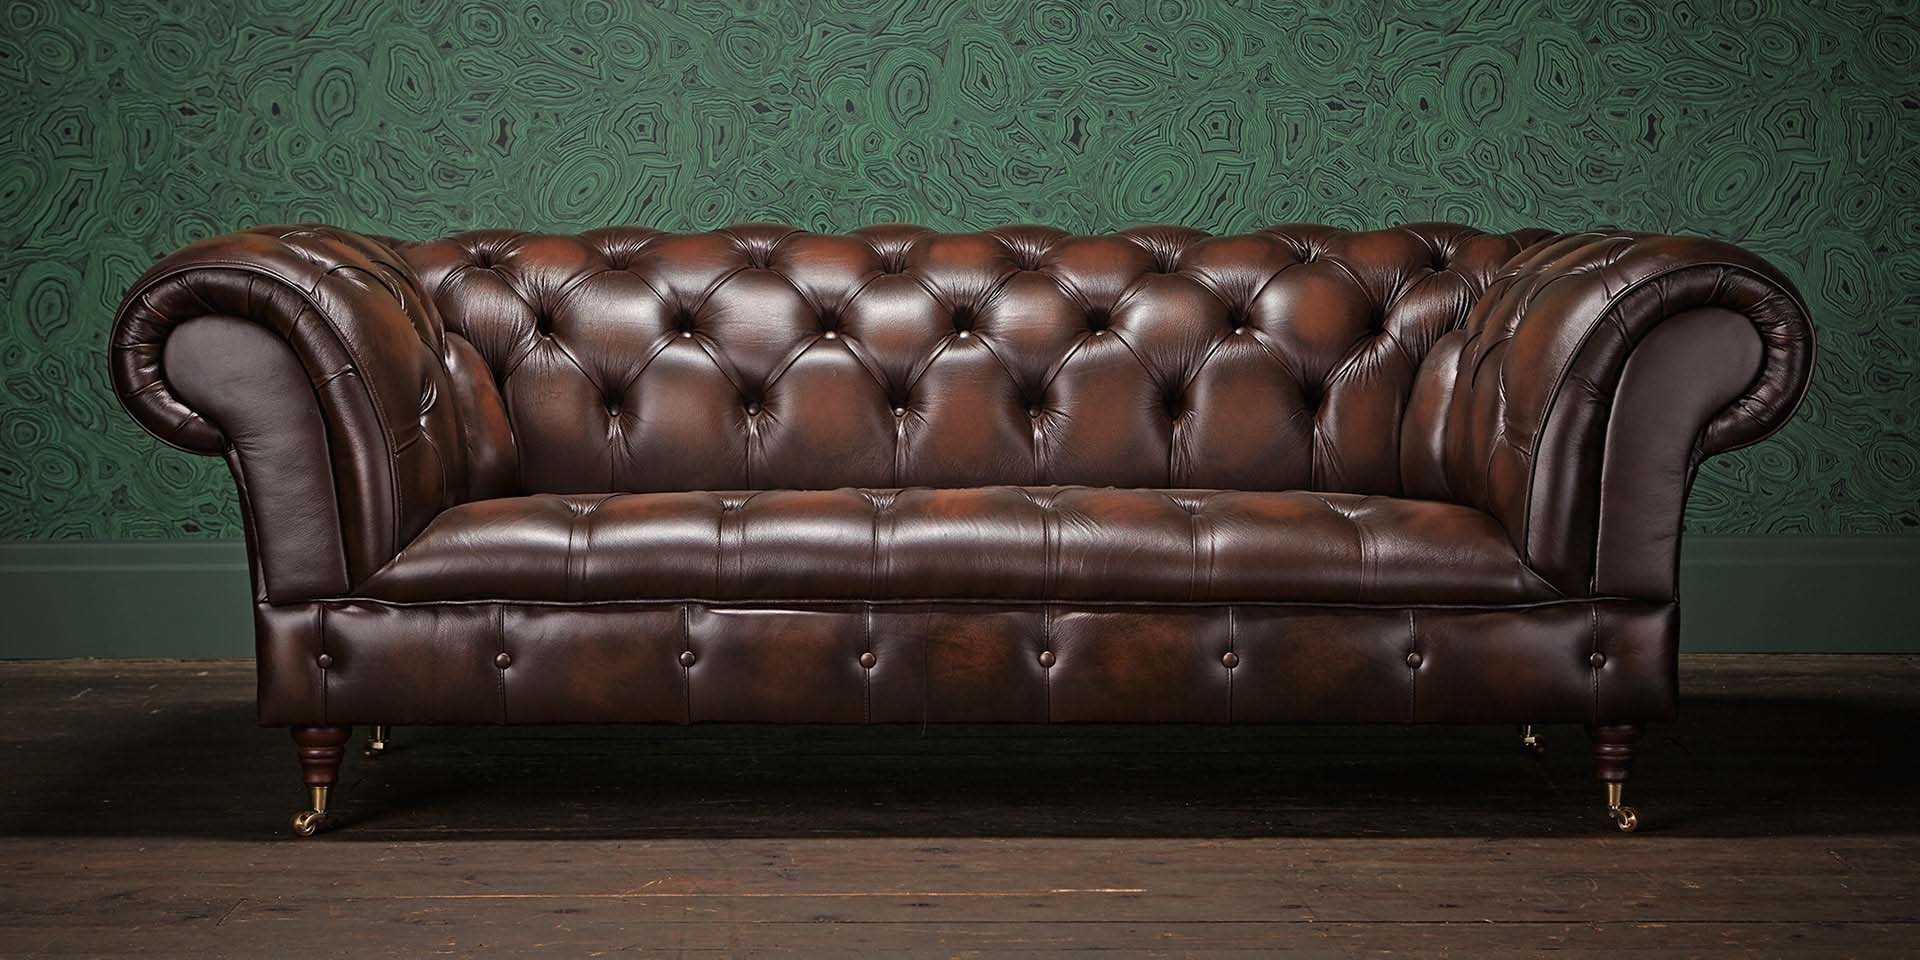 Chesterfields Of England The Original Chesterfield Company Regarding Chesterfield Sofa And Chairs (Image 6 of 15)